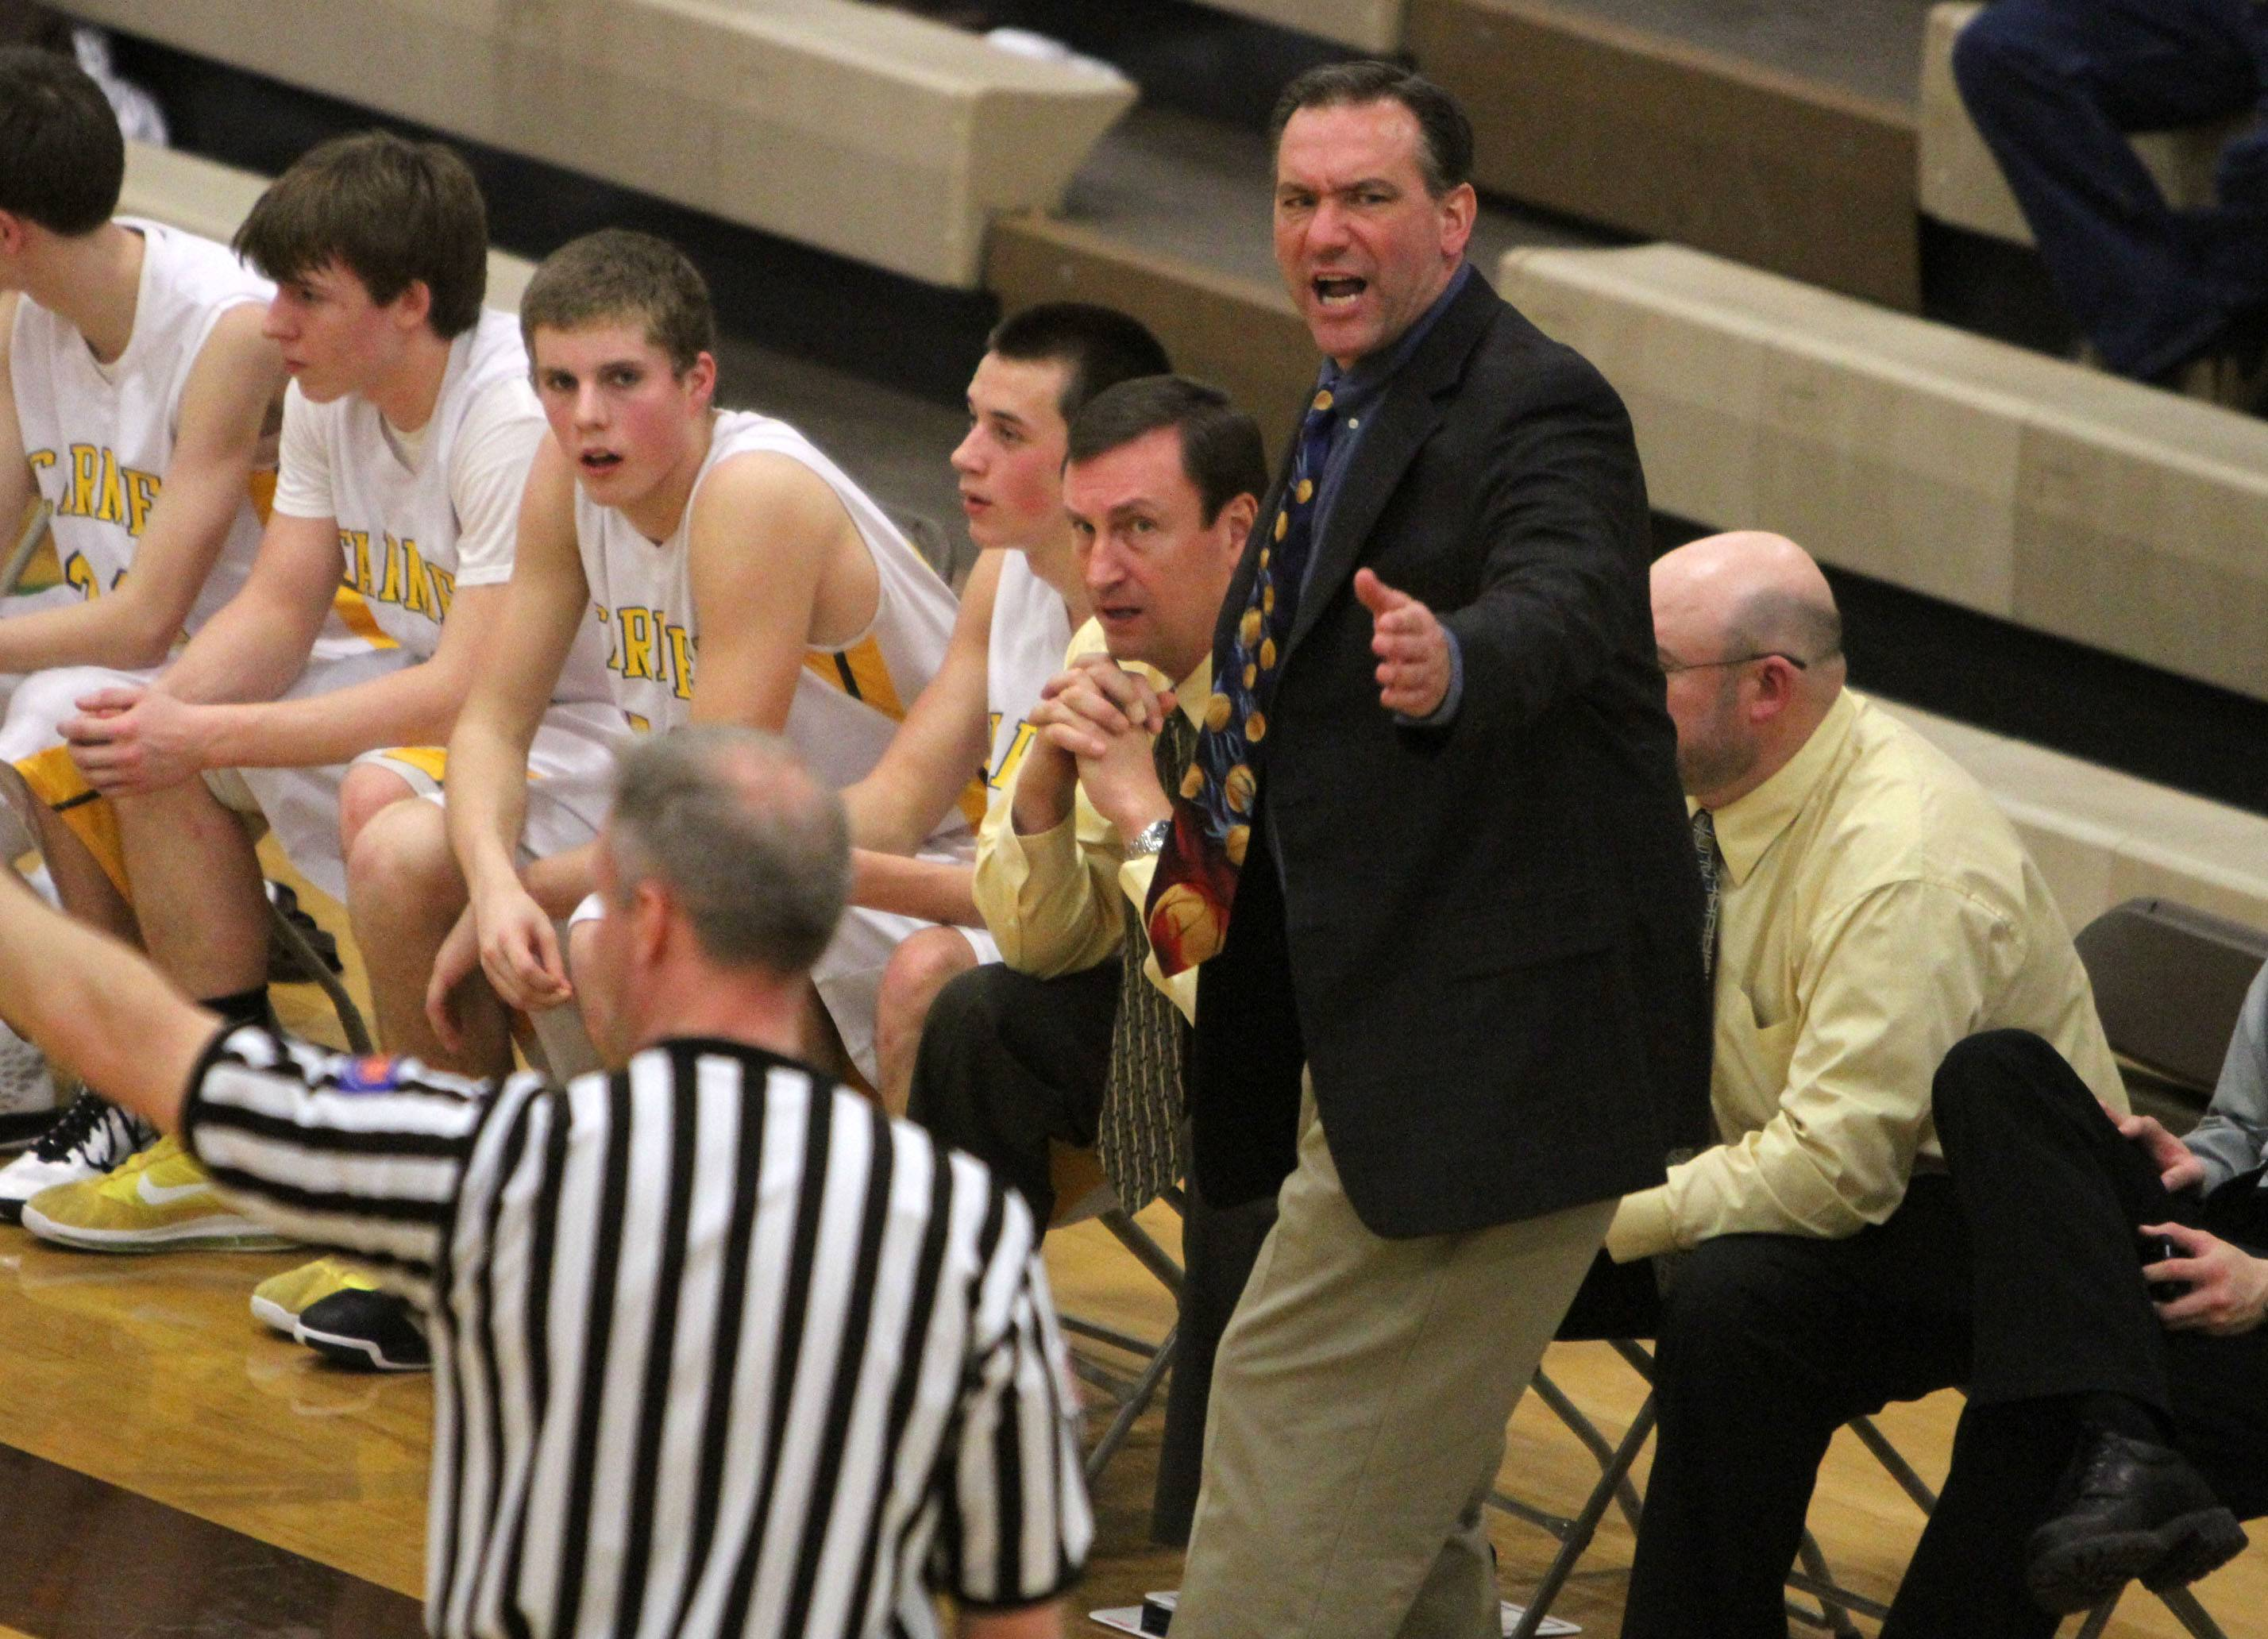 Tim Bowen coached Carmel's boys basketball team to a 25-9 record and Class 3A regional championship this past season.